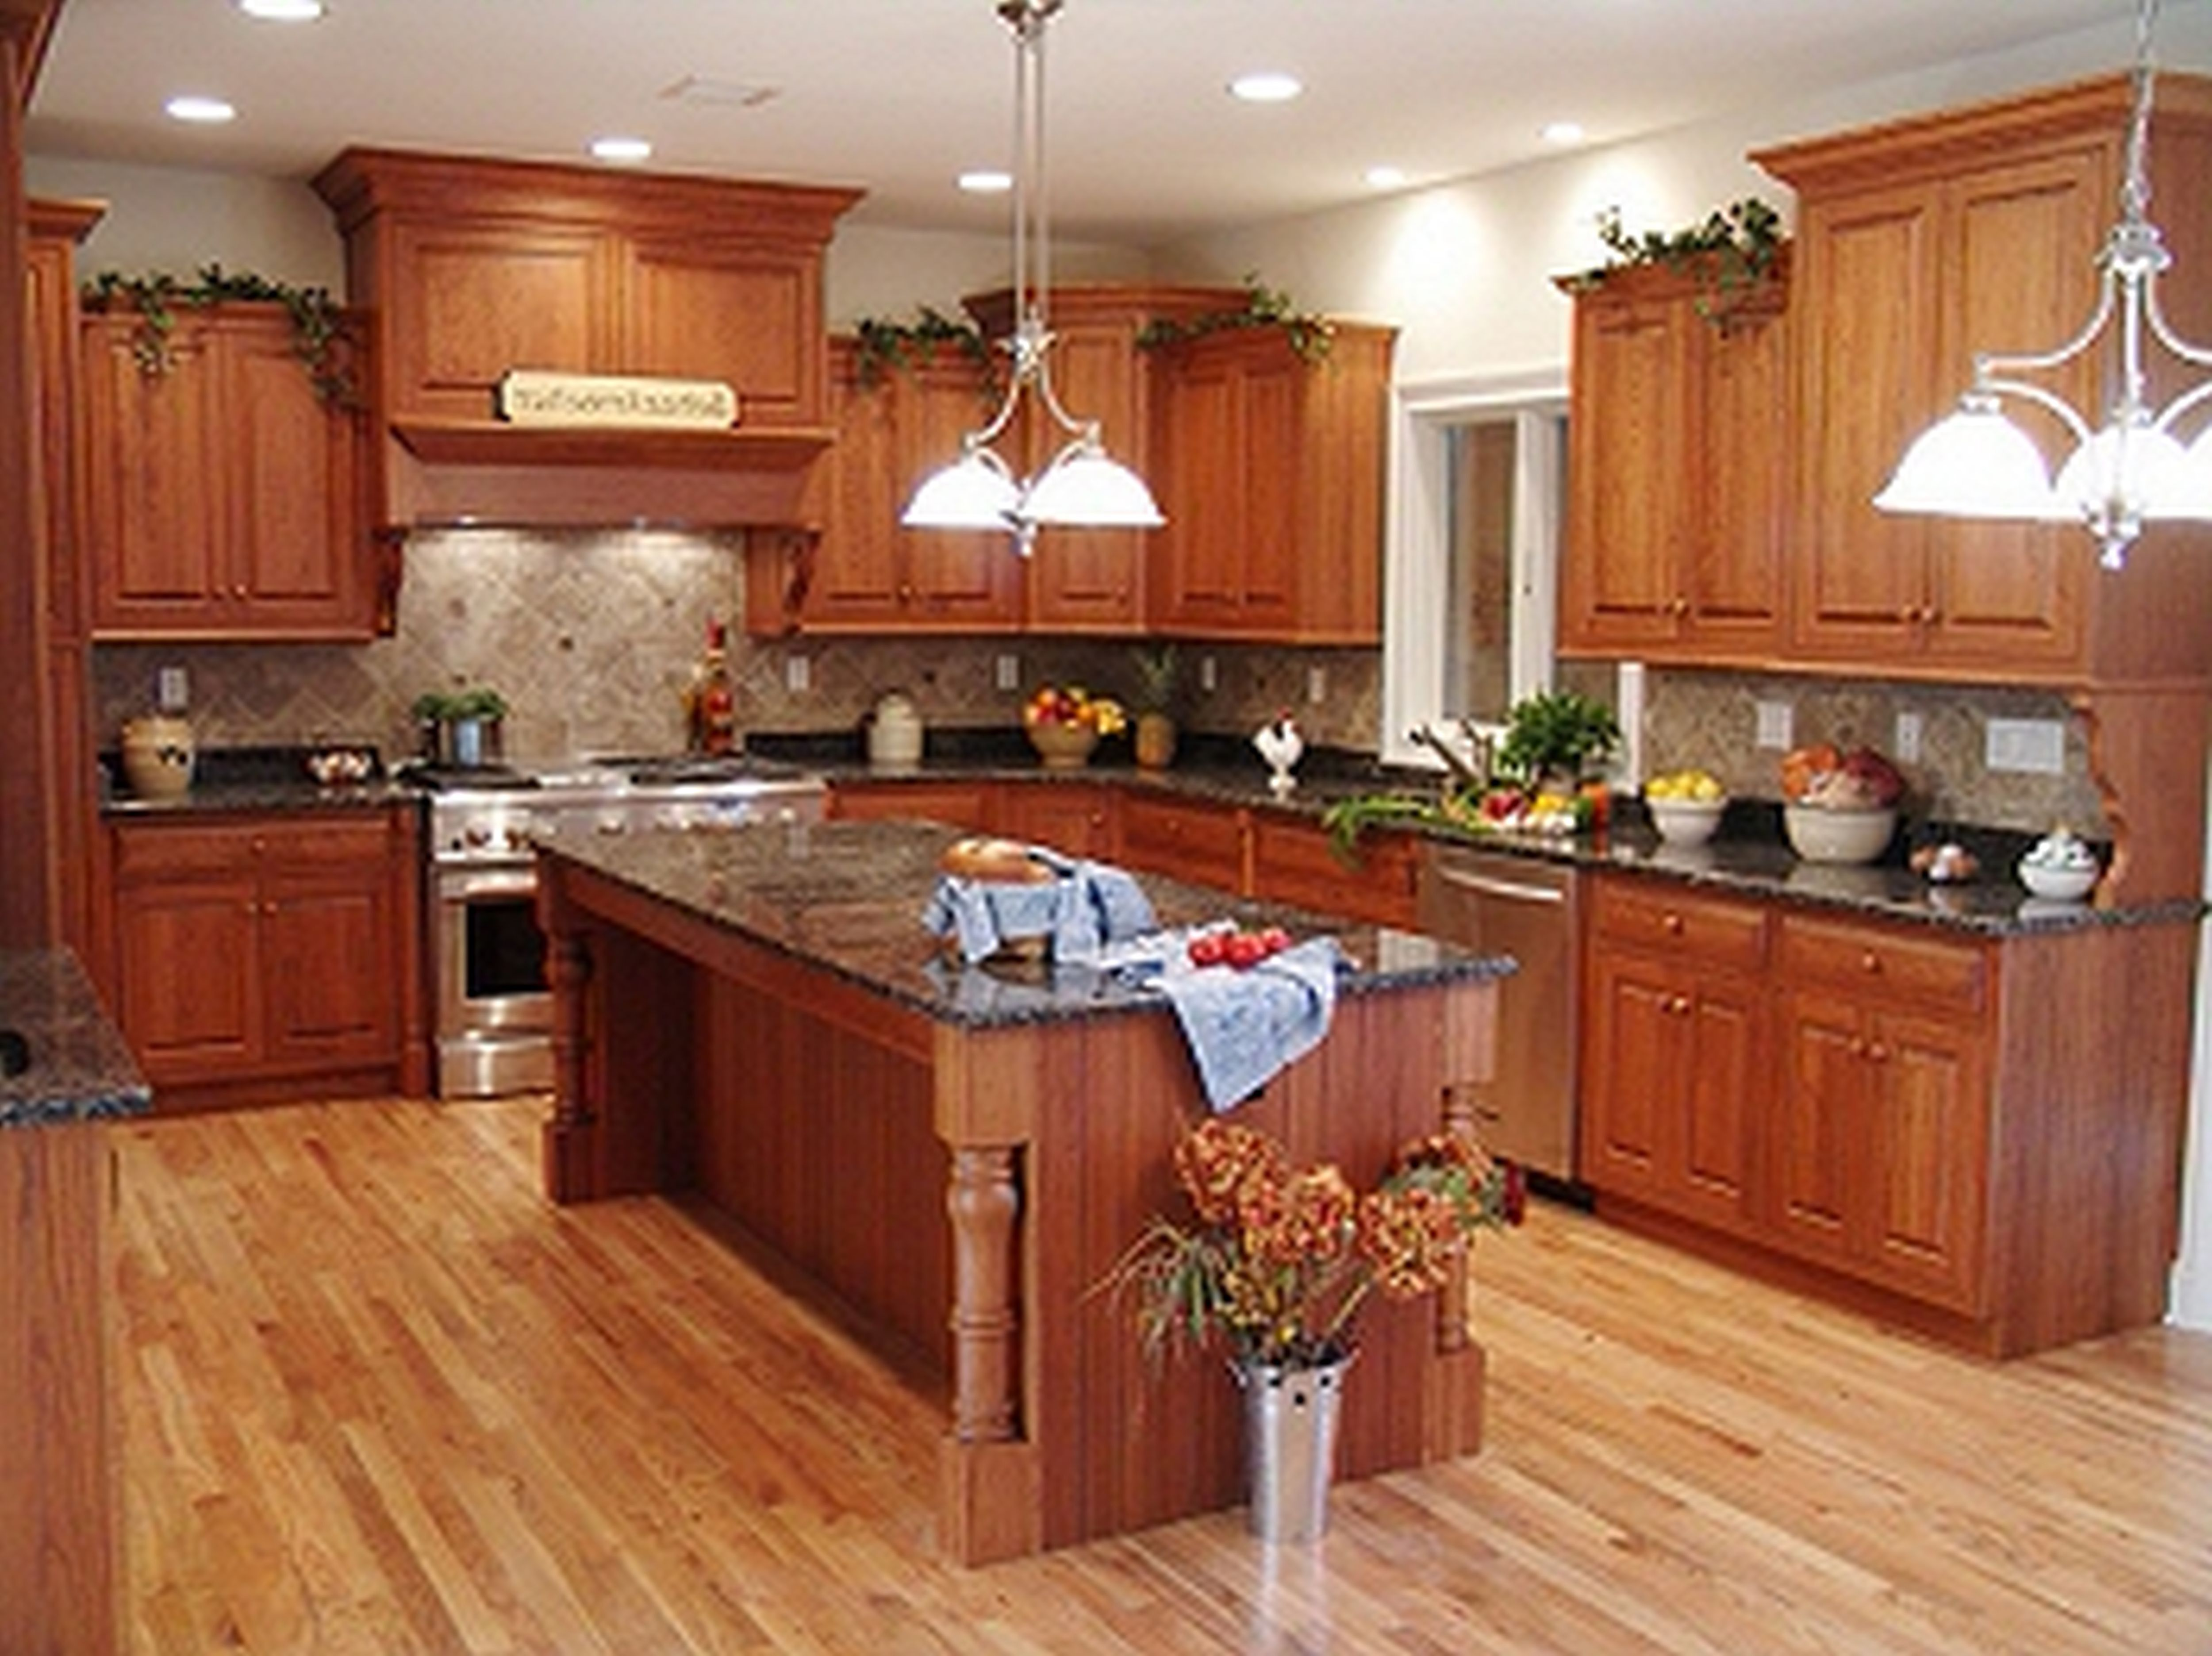 Cabinet Designs For Kitchens Rustic Kitchen Cabinets Fake Wooden Kitchen Floor